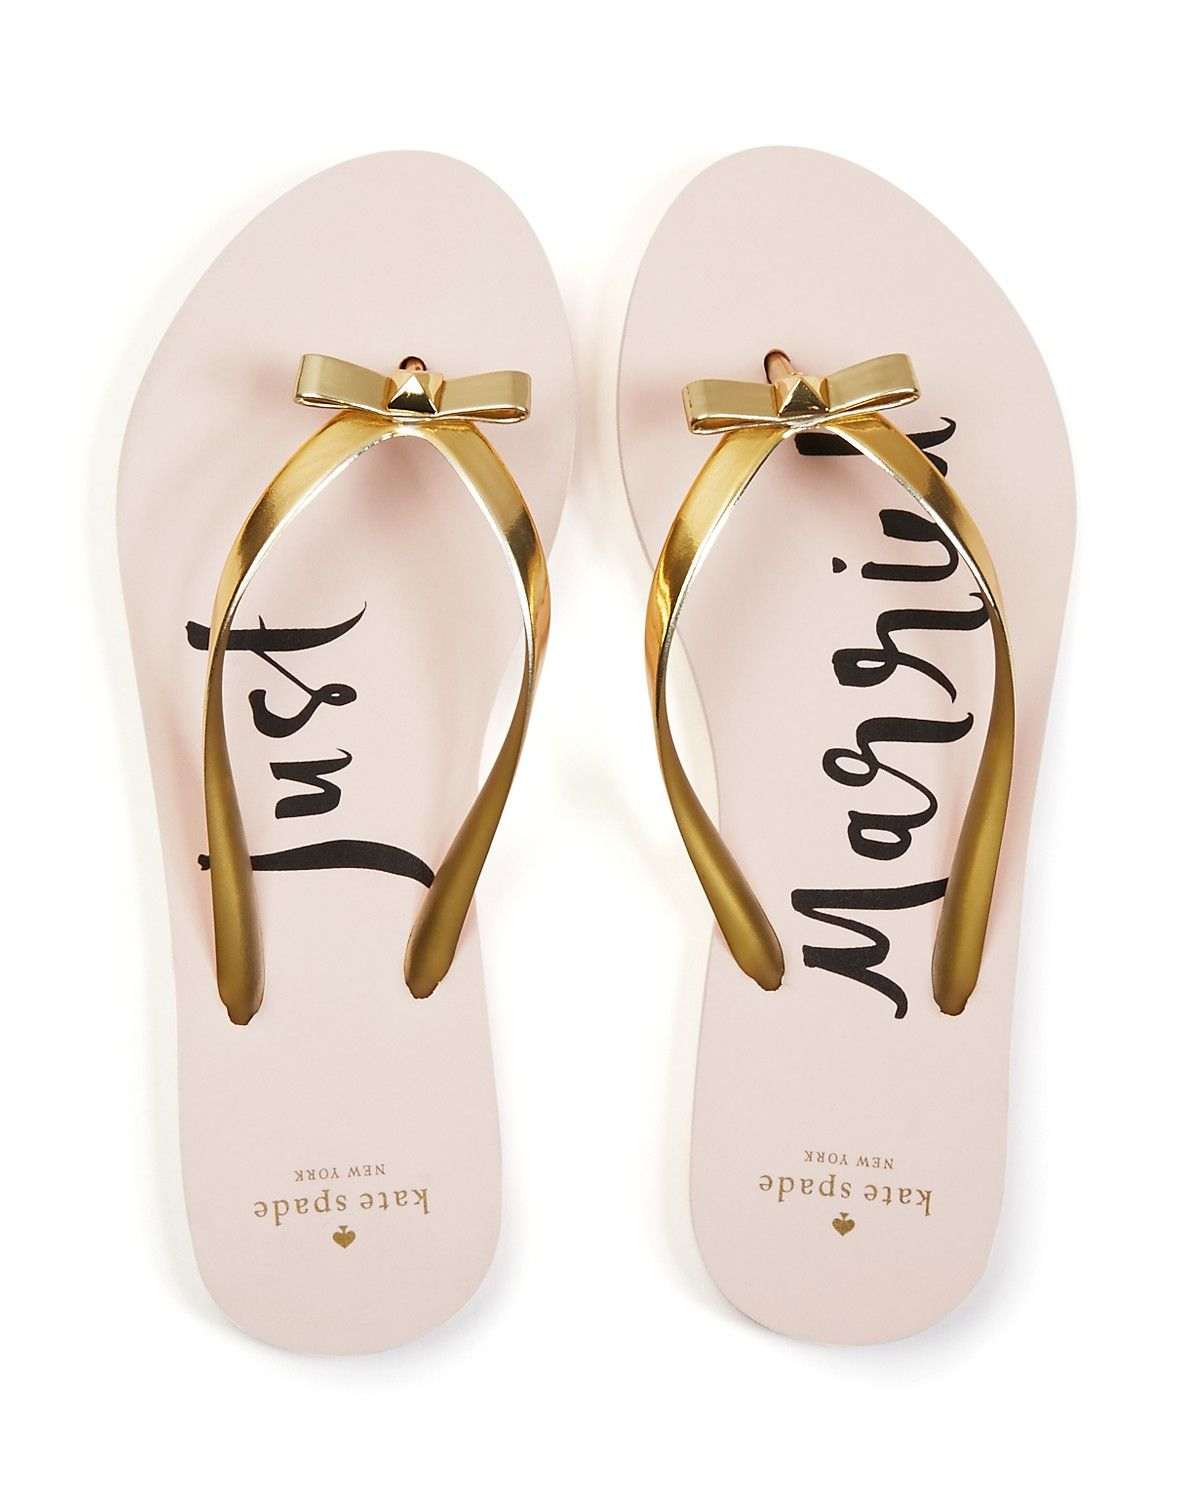 781031473c06 kate spade new york Nadine Just Married Flip Flops